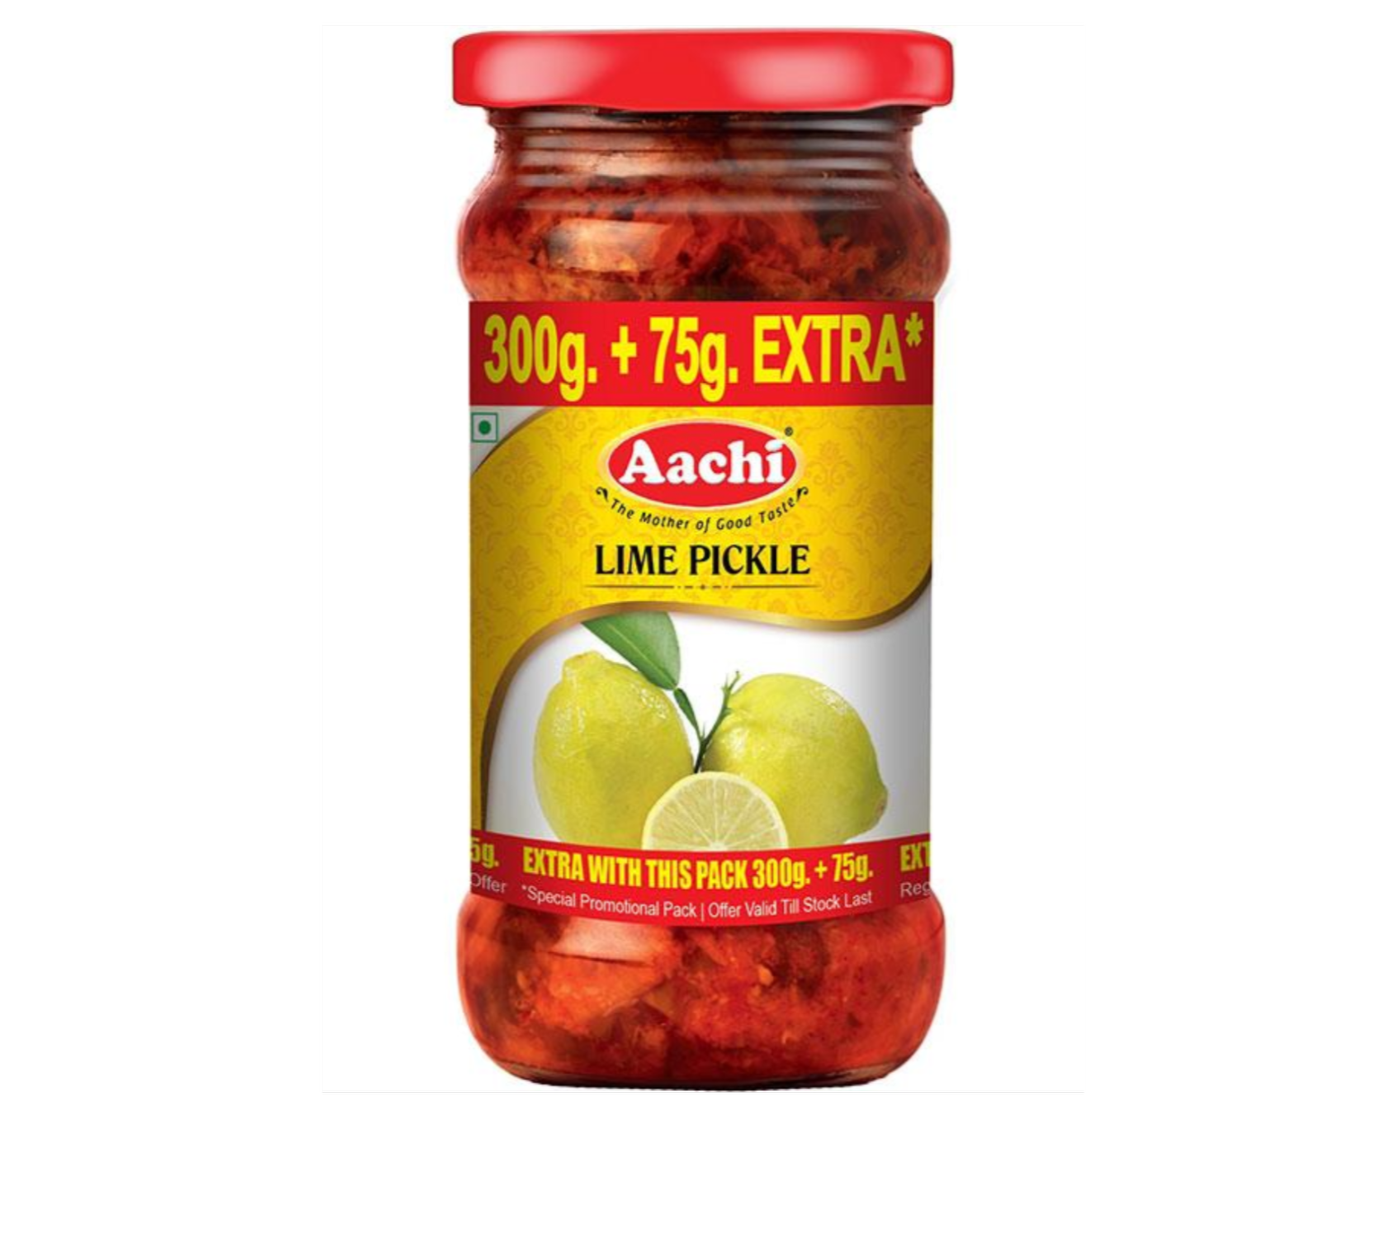 Aachi Lime Pickle